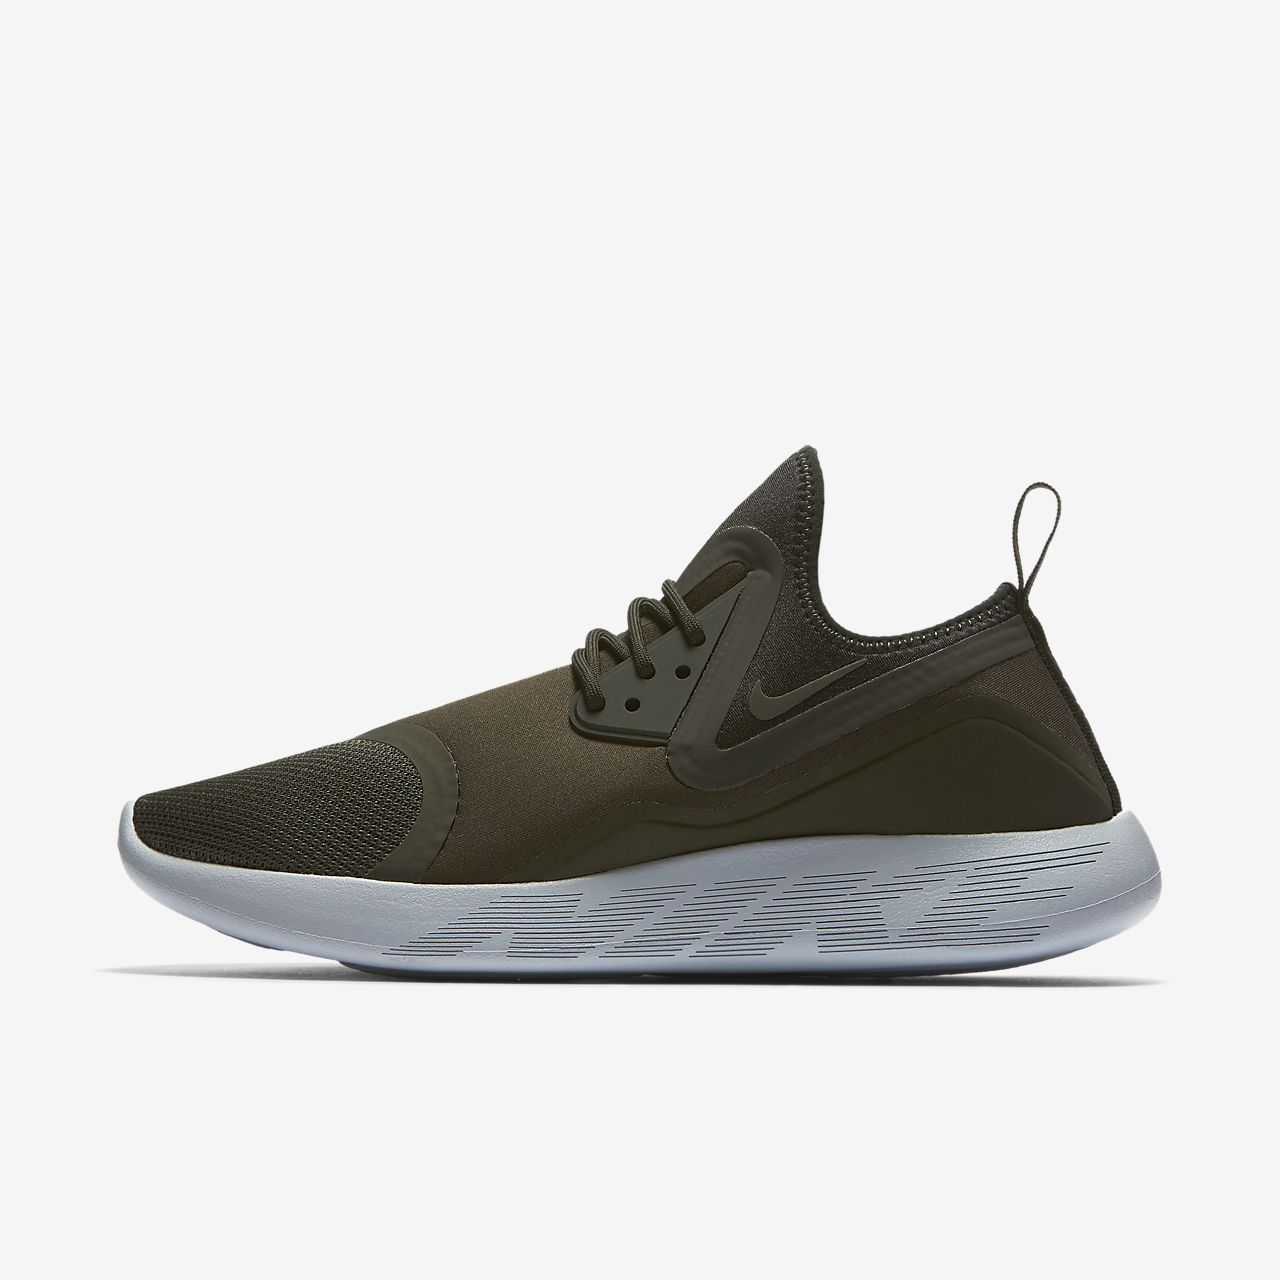 Low Resolution Nike LunarCharge Essential Herenschoen Nike LunarCharge  Essential Herenschoen